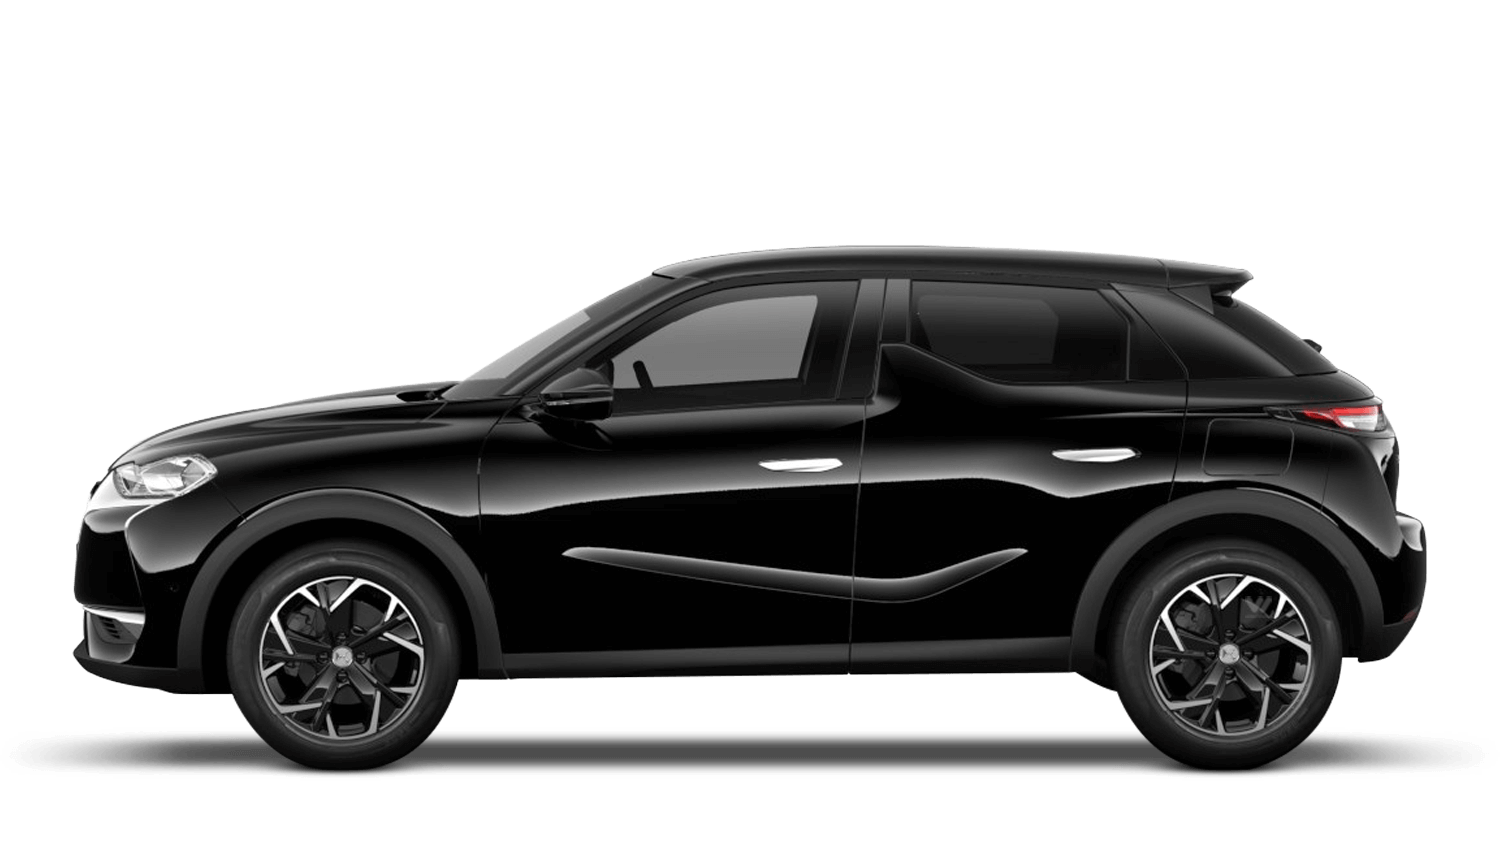 Perla Nera Black (Metallic) DS 3 CROSSBACK